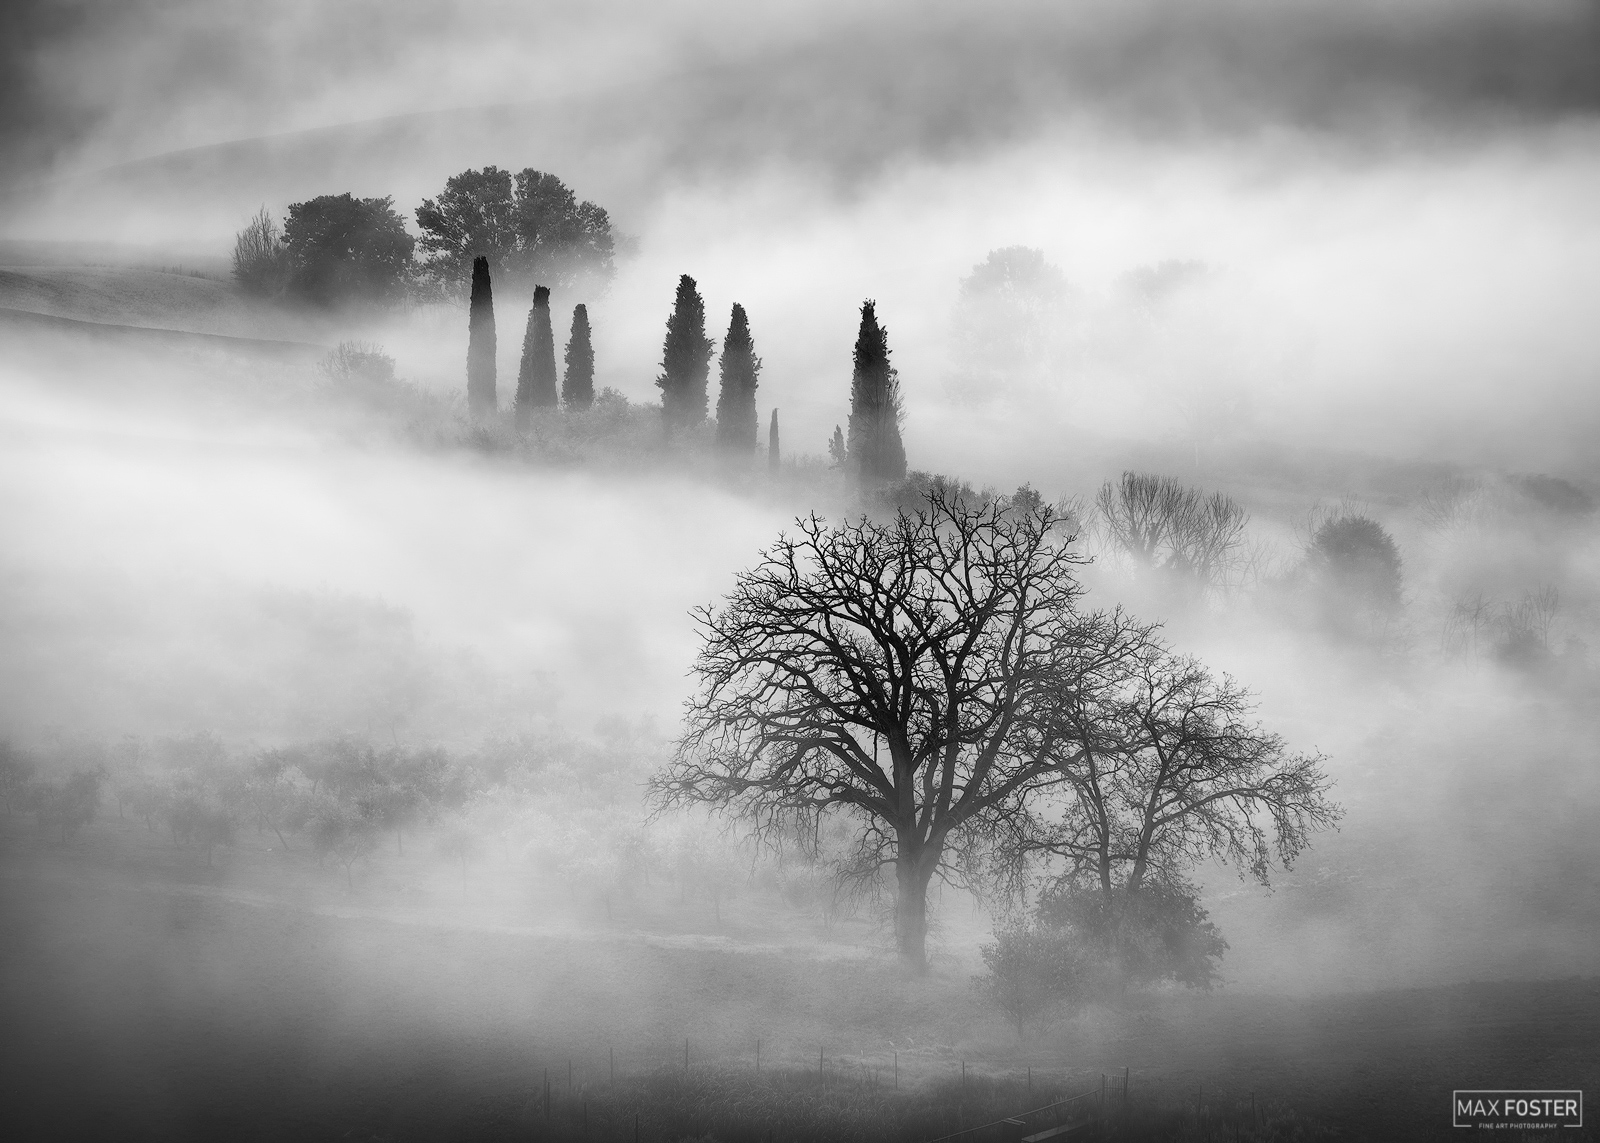 Val d'Orcia, Valdorcia, Tuscany, Italy, Sleepy Hollow, Renaissance, picturesque, towns, villages, photo